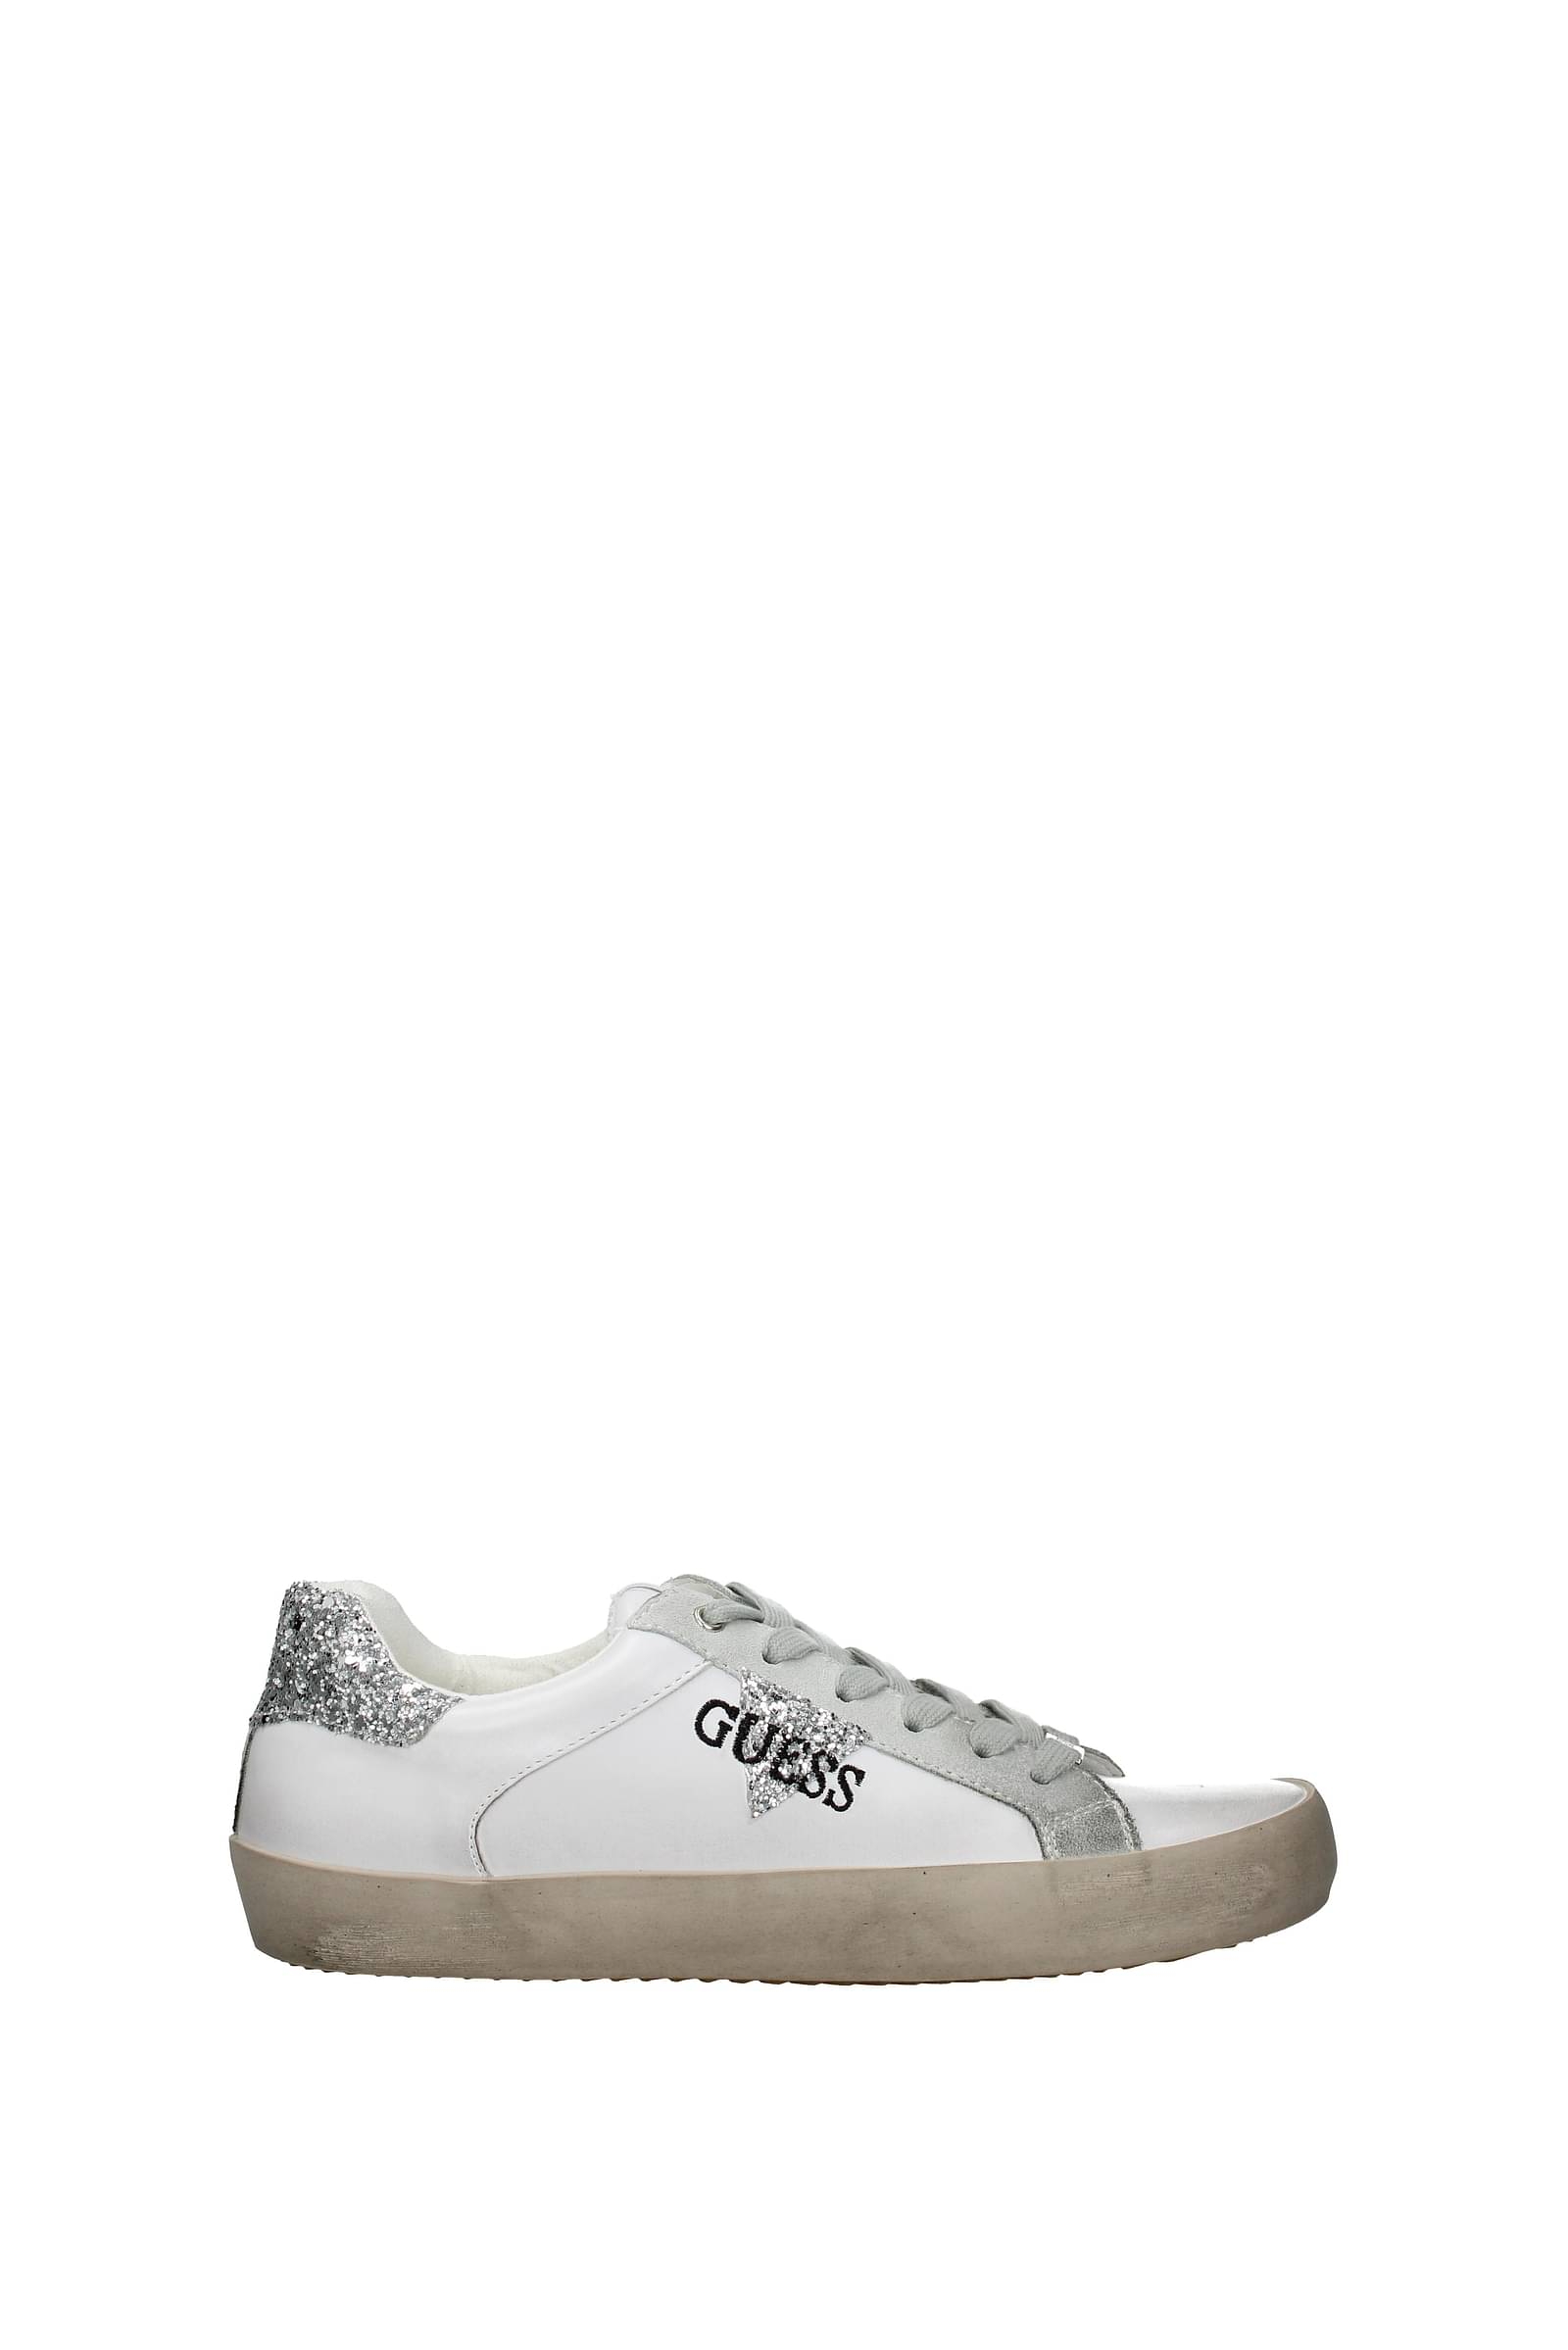 Guess outlet: boots, sneakers and